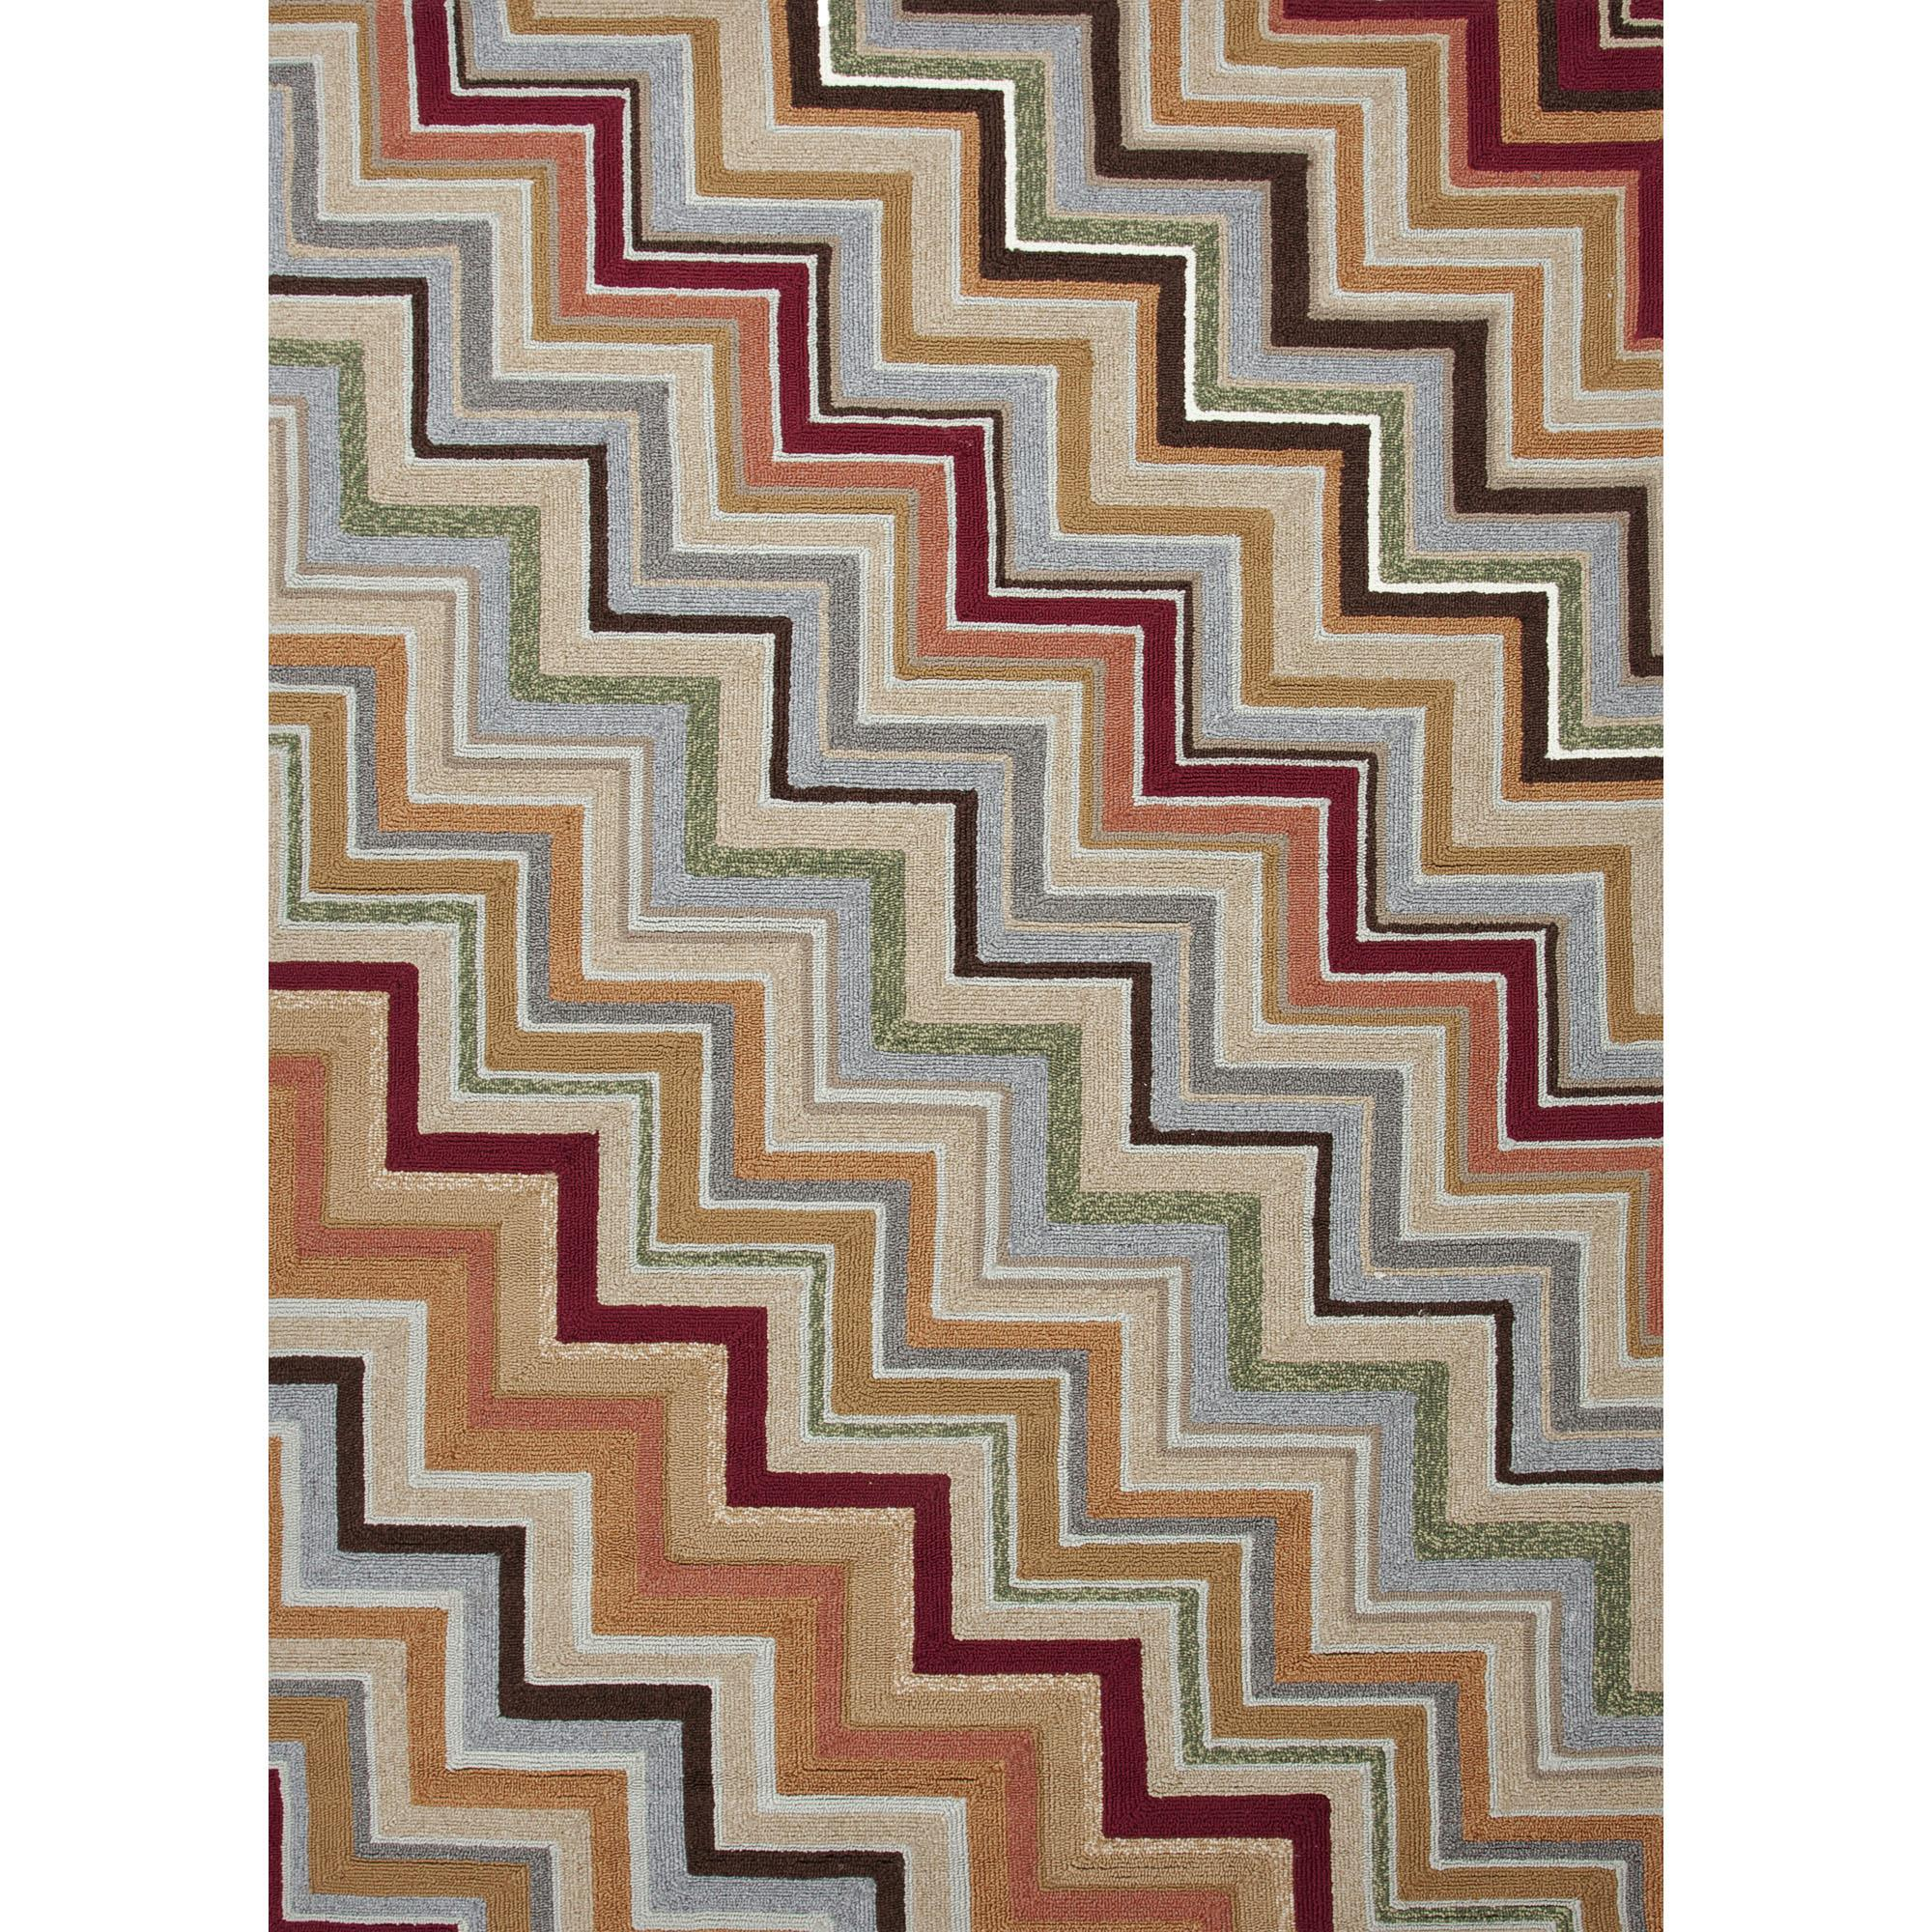 Colours 2 x 3 Rug by JAIPUR Living at Malouf Furniture Co.